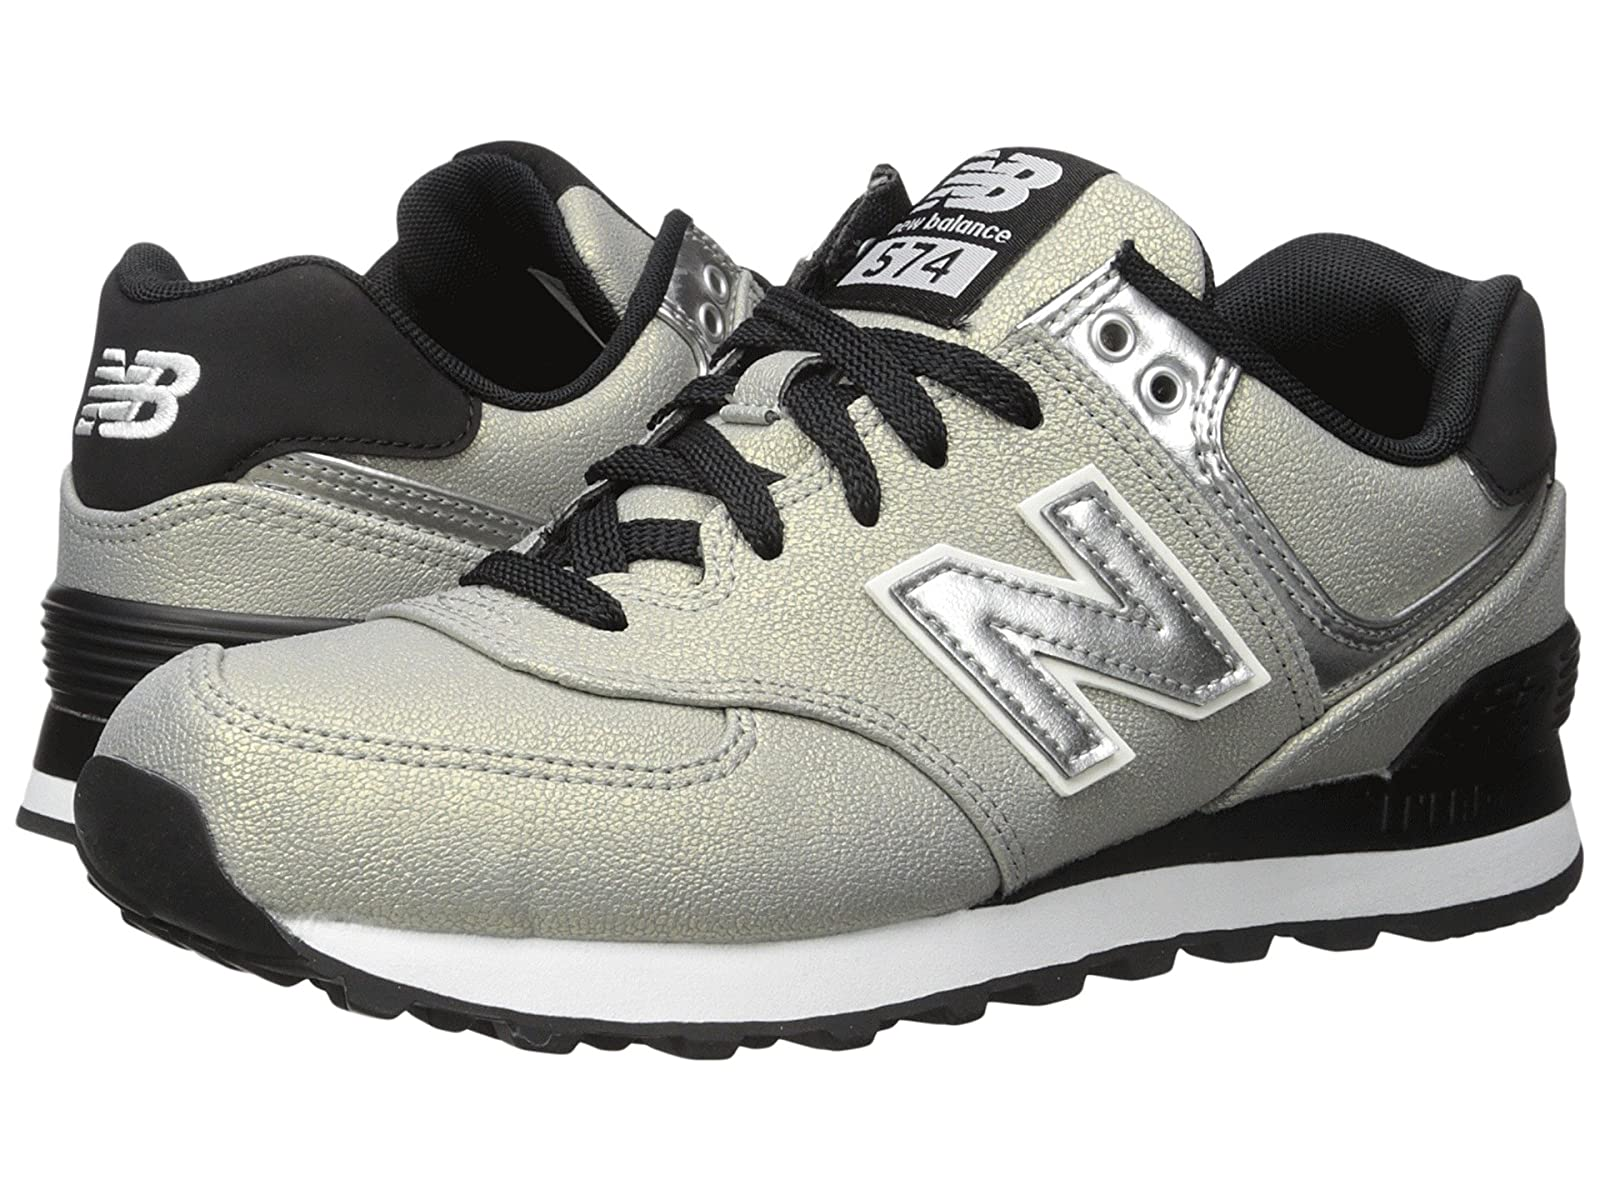 New Balance Classics WL574v1Cheap and distinctive eye-catching shoes